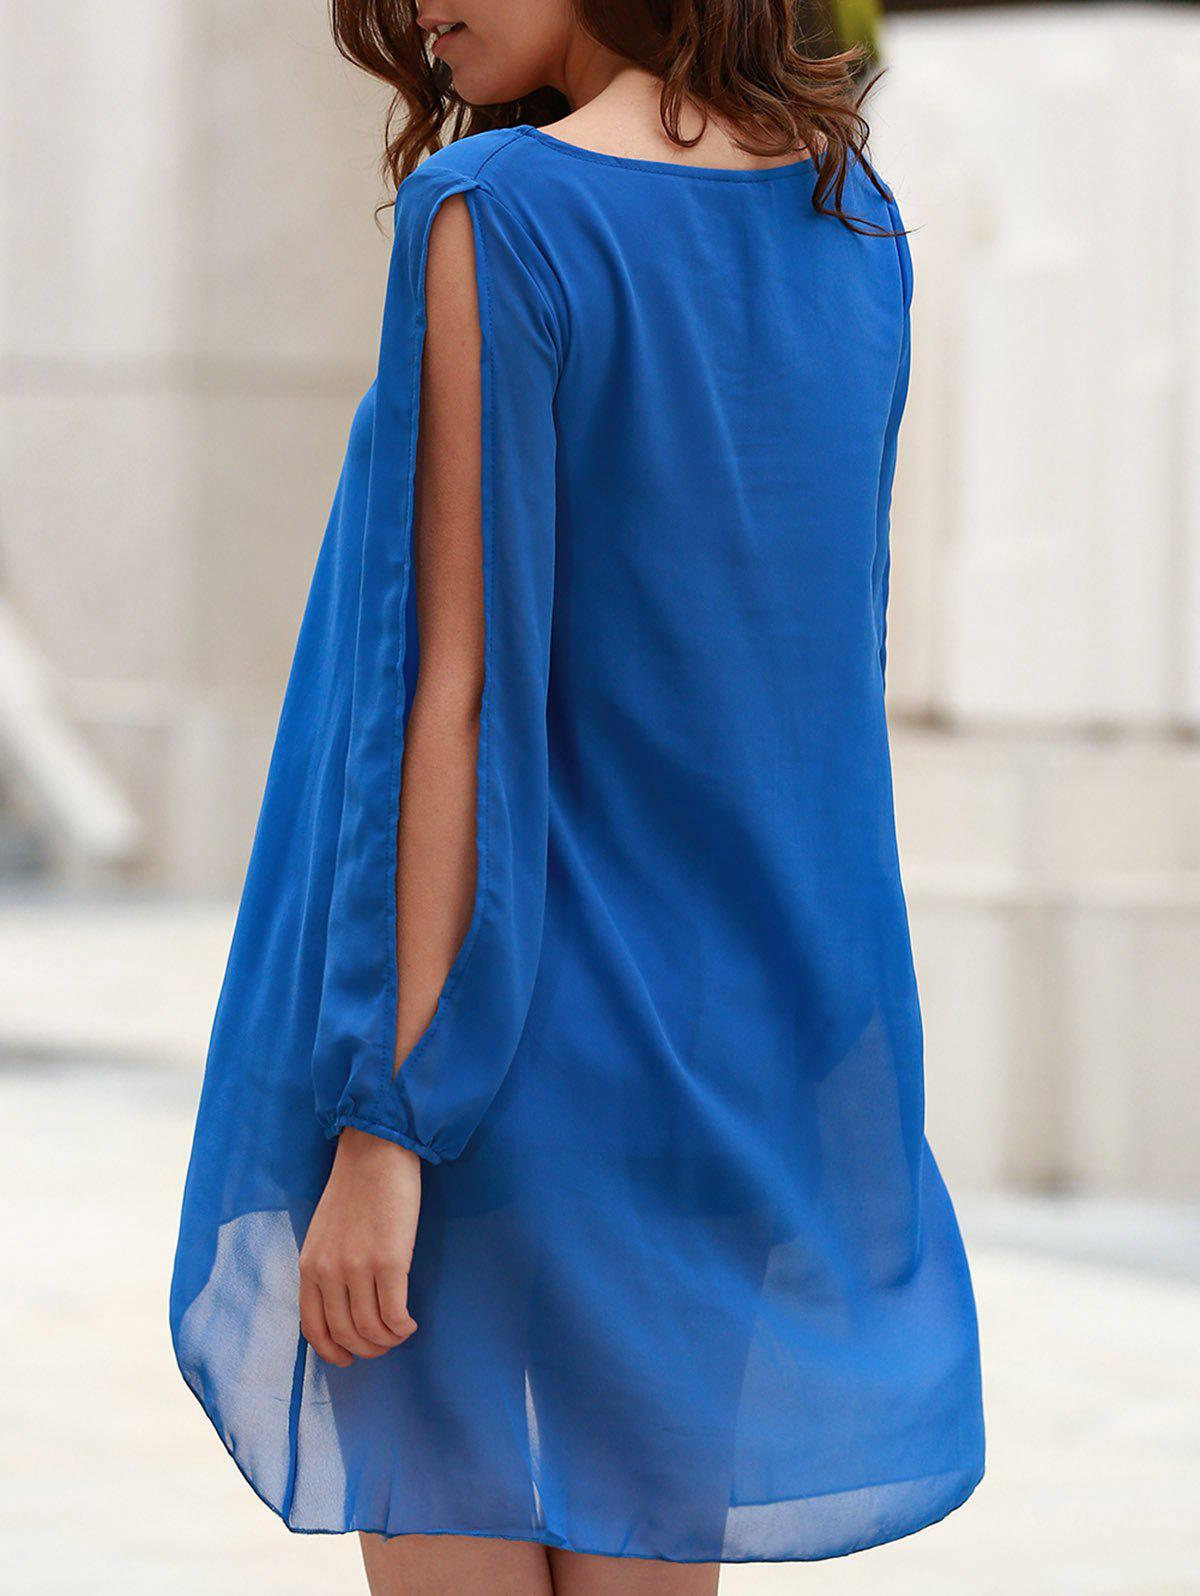 Stylish Scoop Neck Long Sleeve Solid Color See-Through Asymmetrical Hollow Out Women's Dress - SAPPHIRE BLUE S